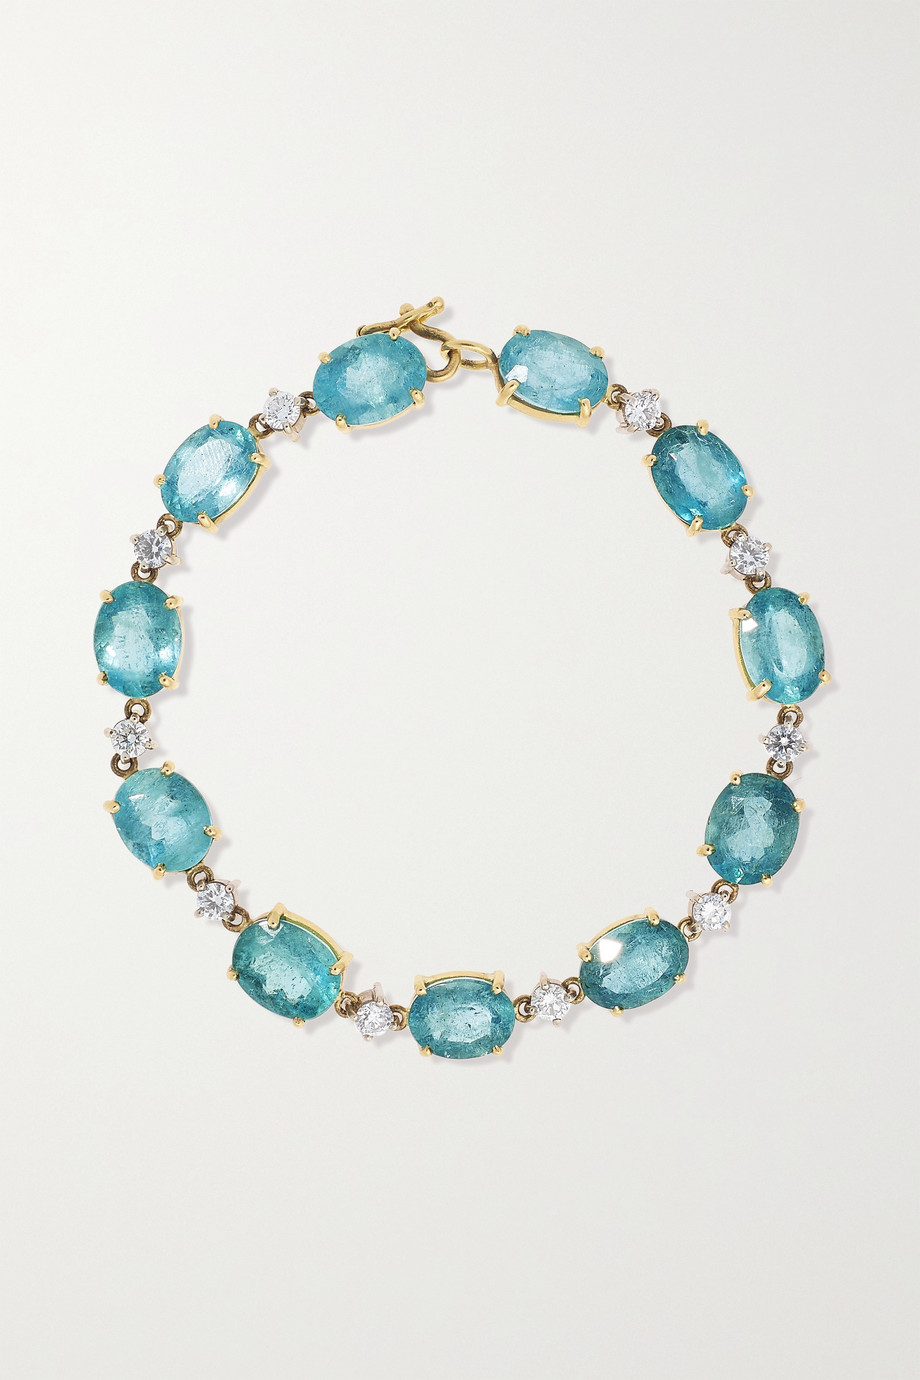 Irene Neuwirth 18-karat yellow and white gold, aquamarine and diamond bracelet